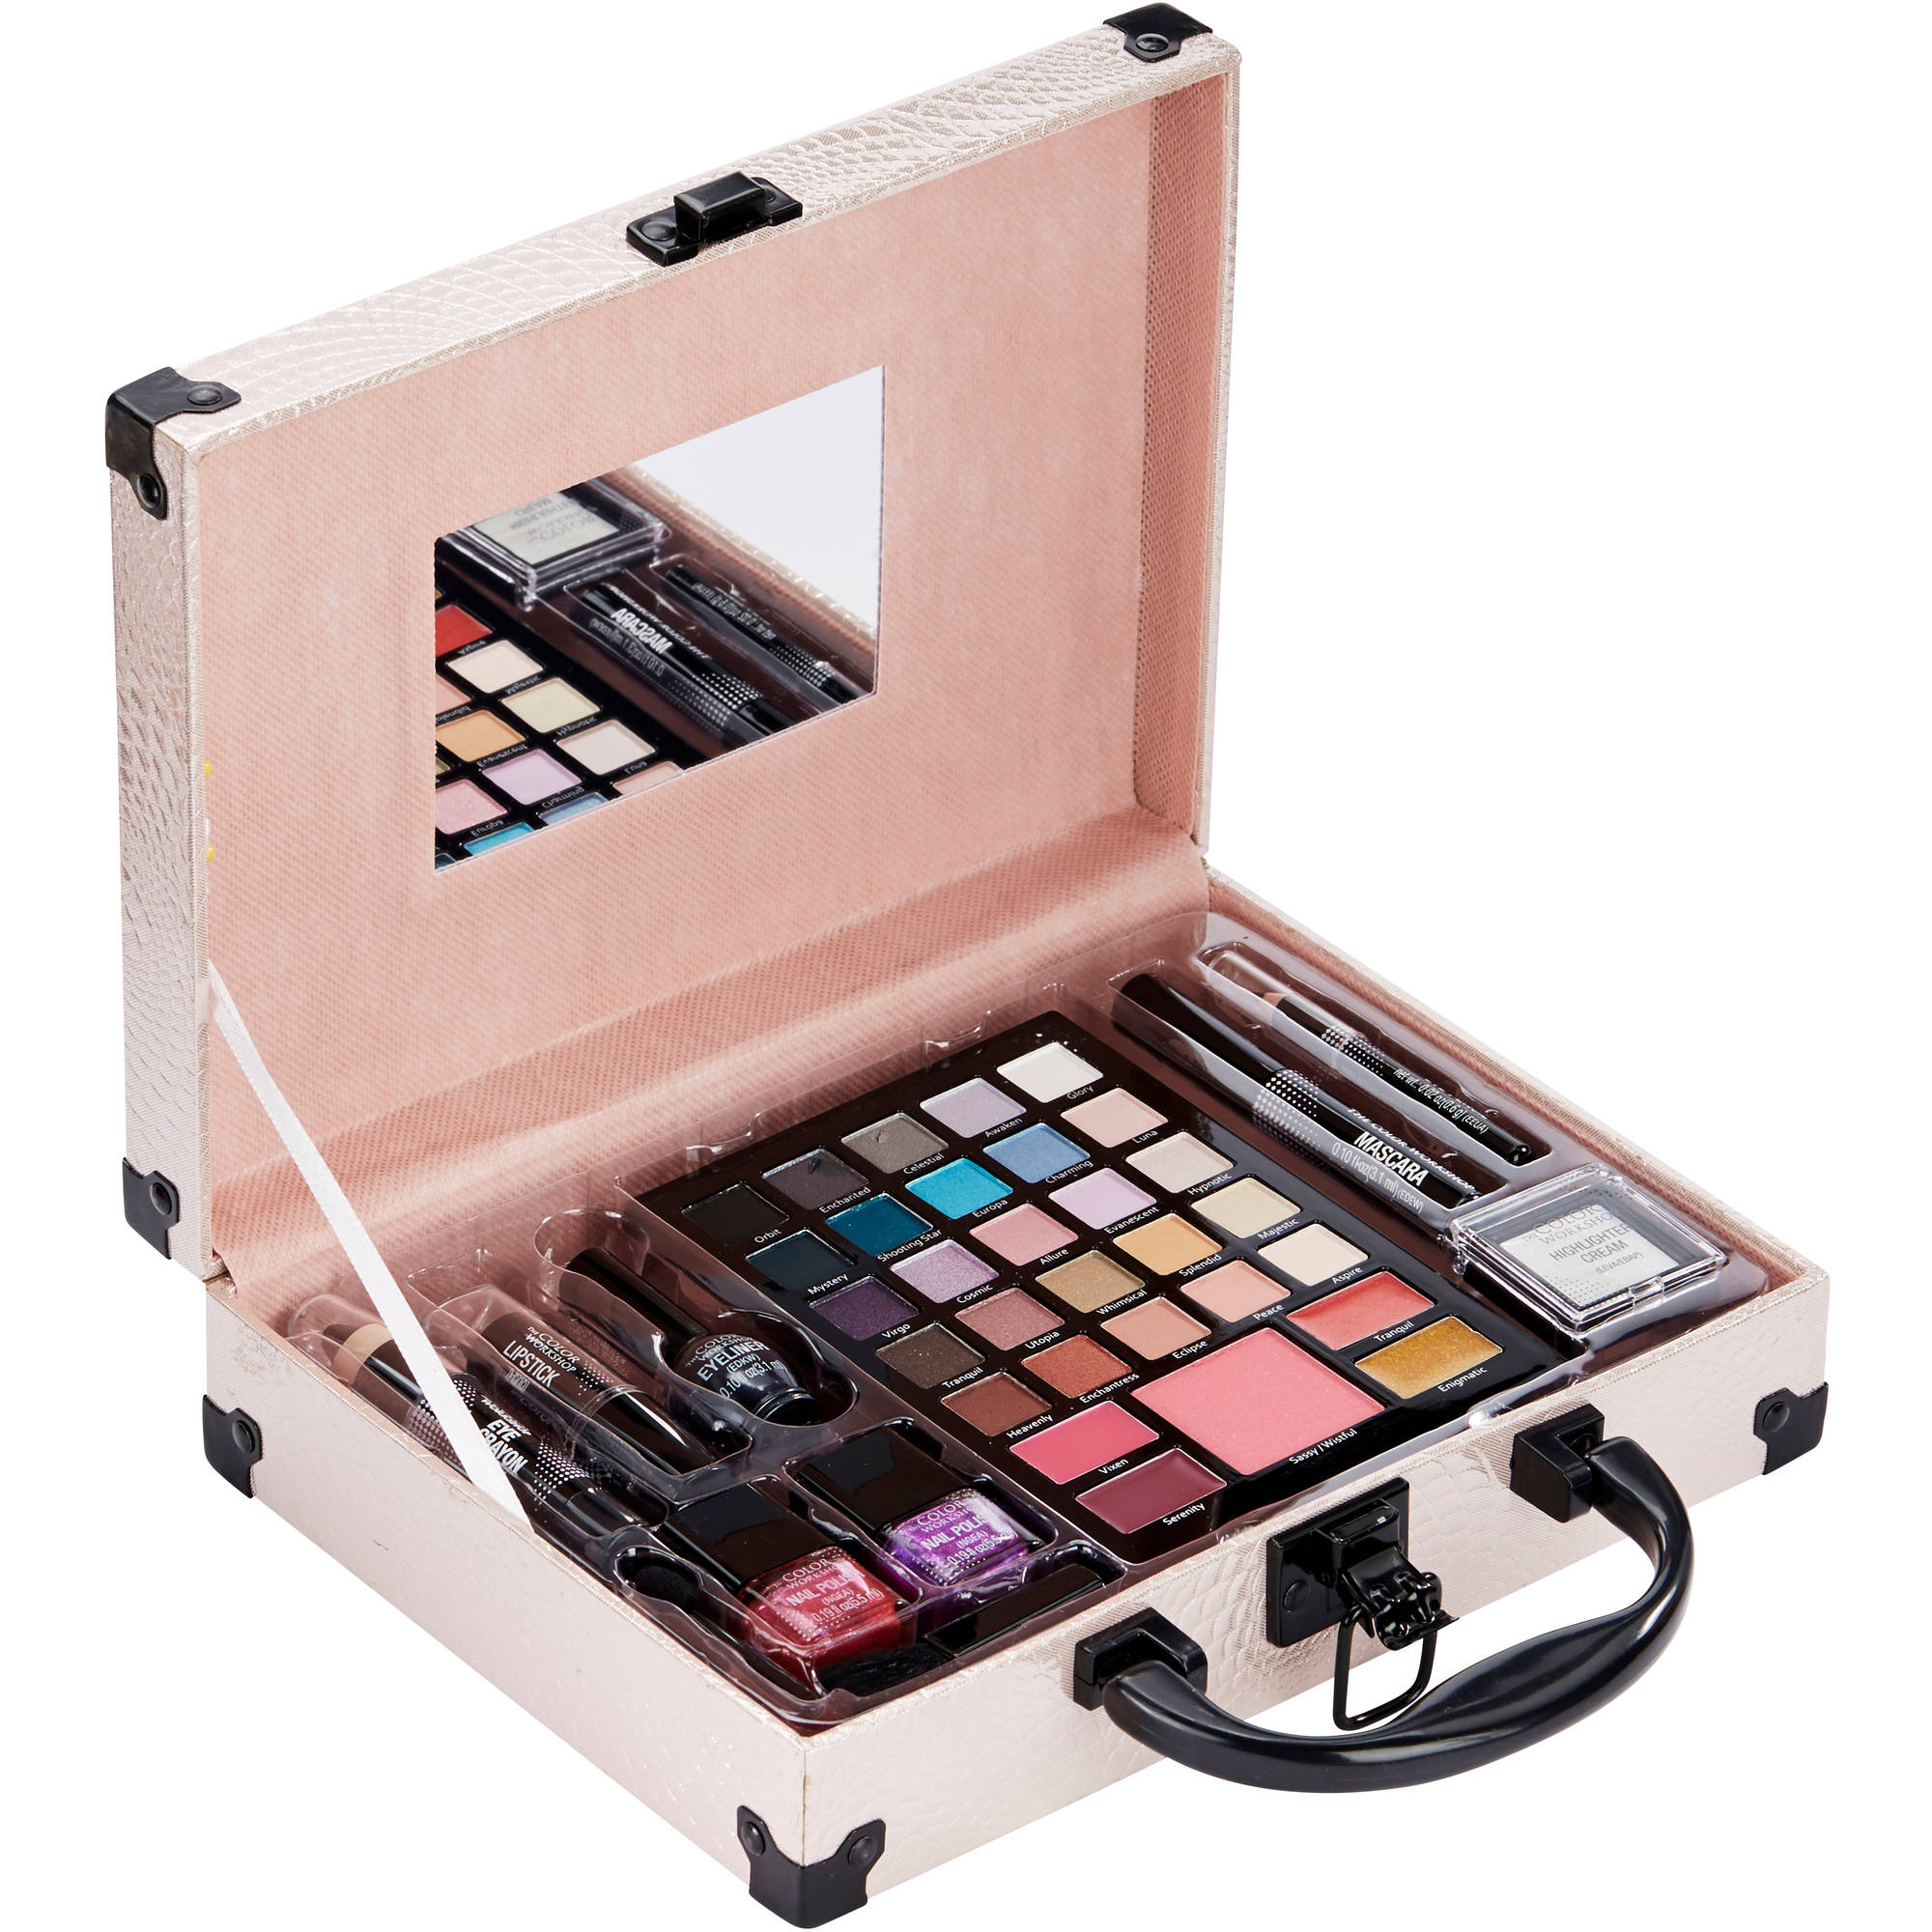 Game nail color workshop - The Color Workshop Beautiful You Pink Makeup Case Collection Variety Pack 41 Pc Walmart Com